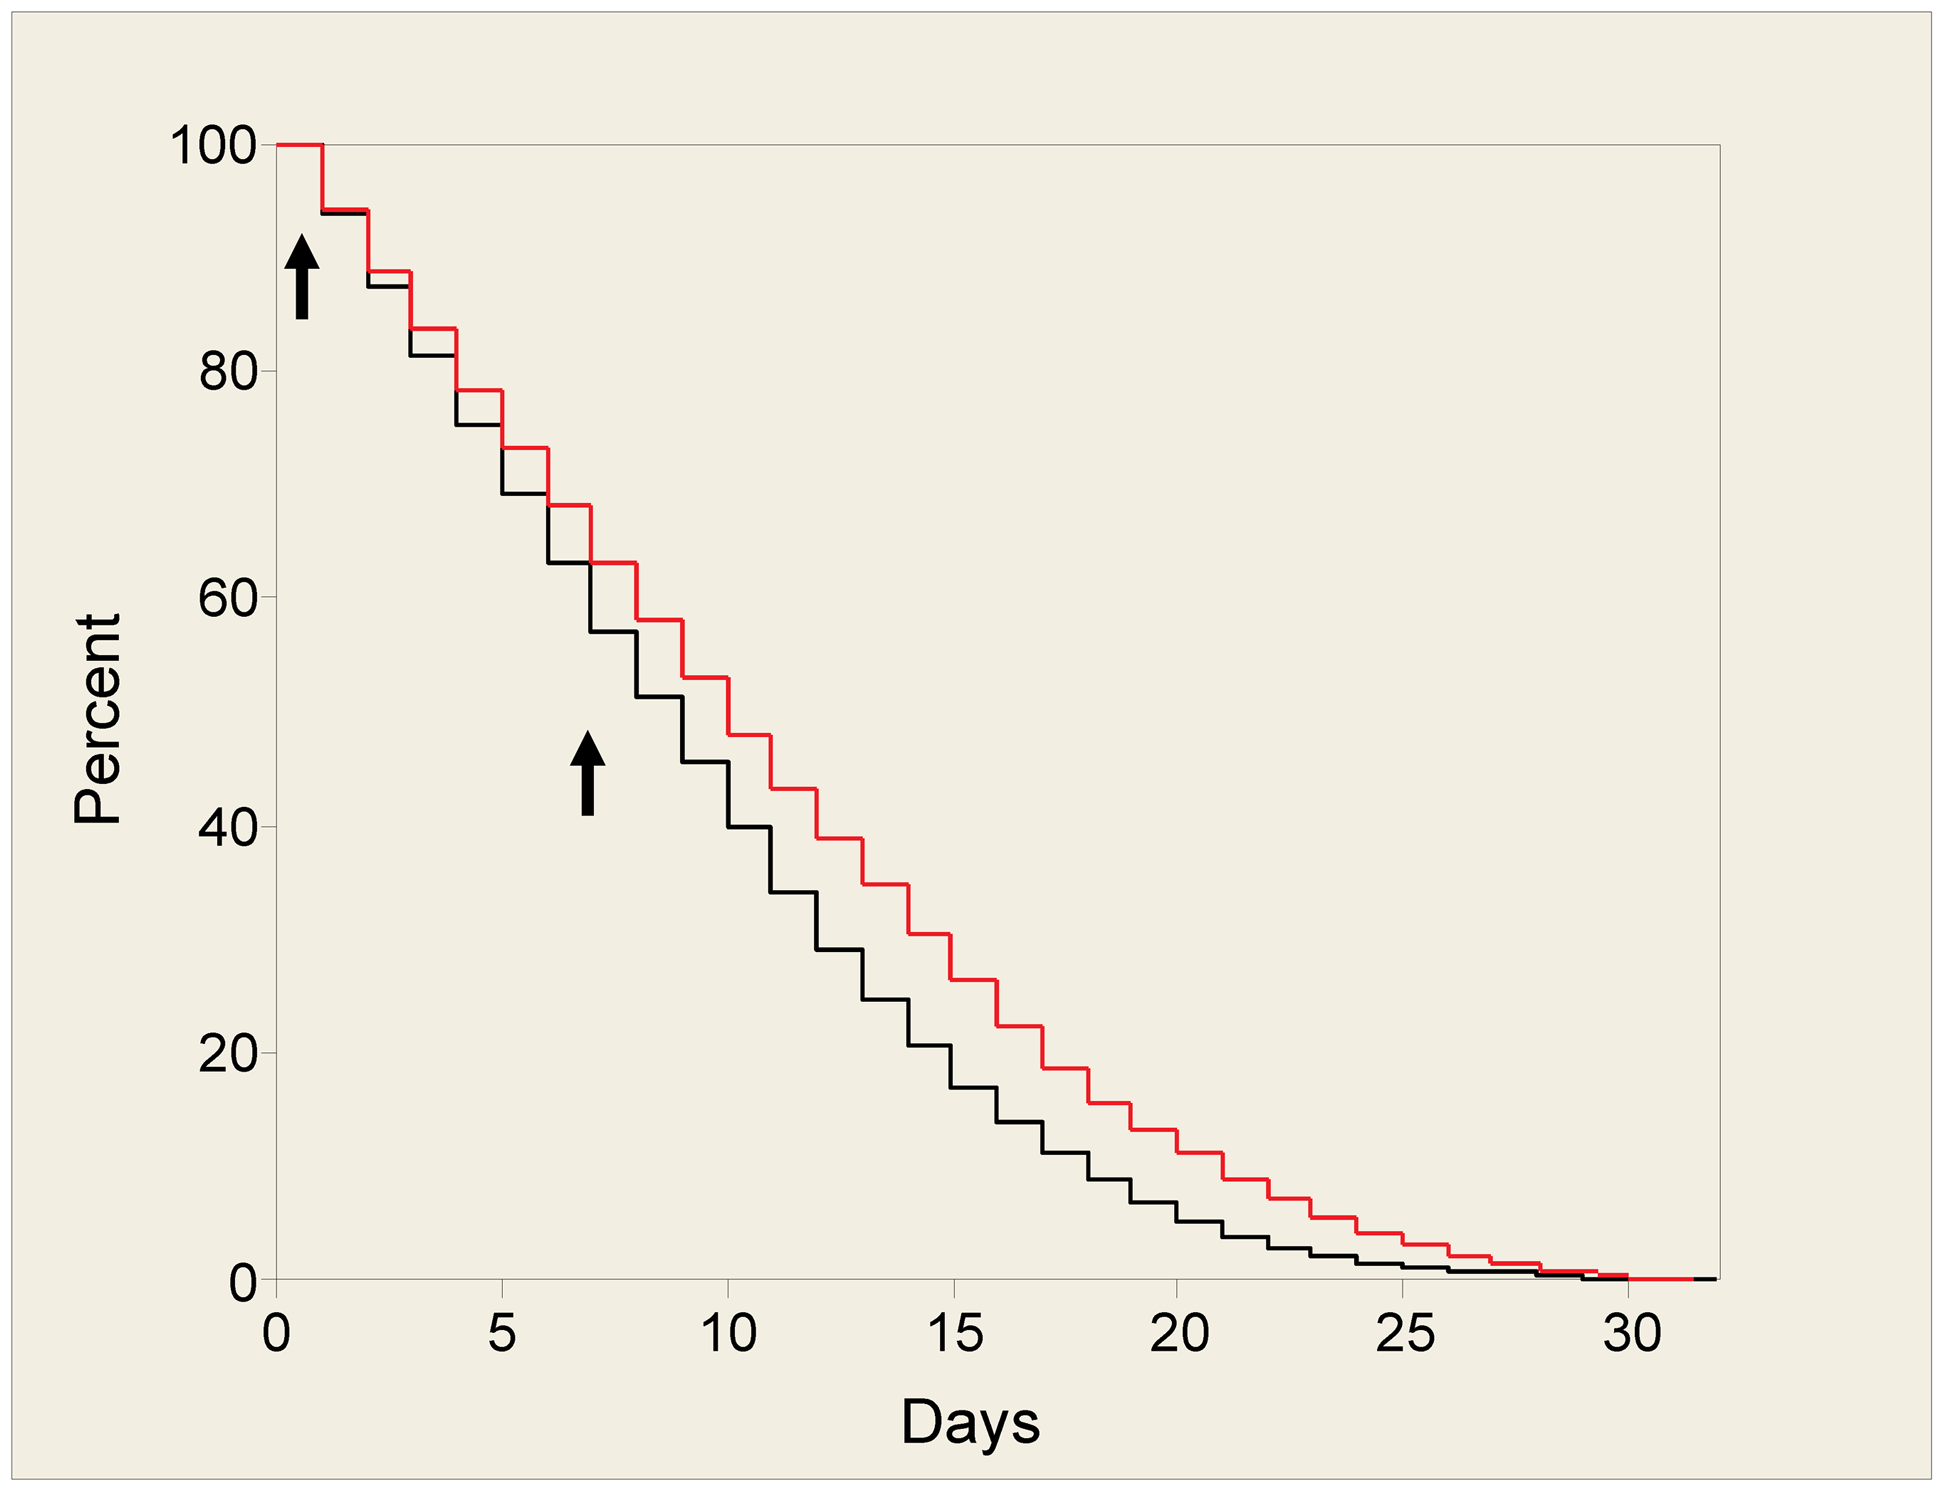 Survival plot for mosquitoes fed with TP10 dimer.